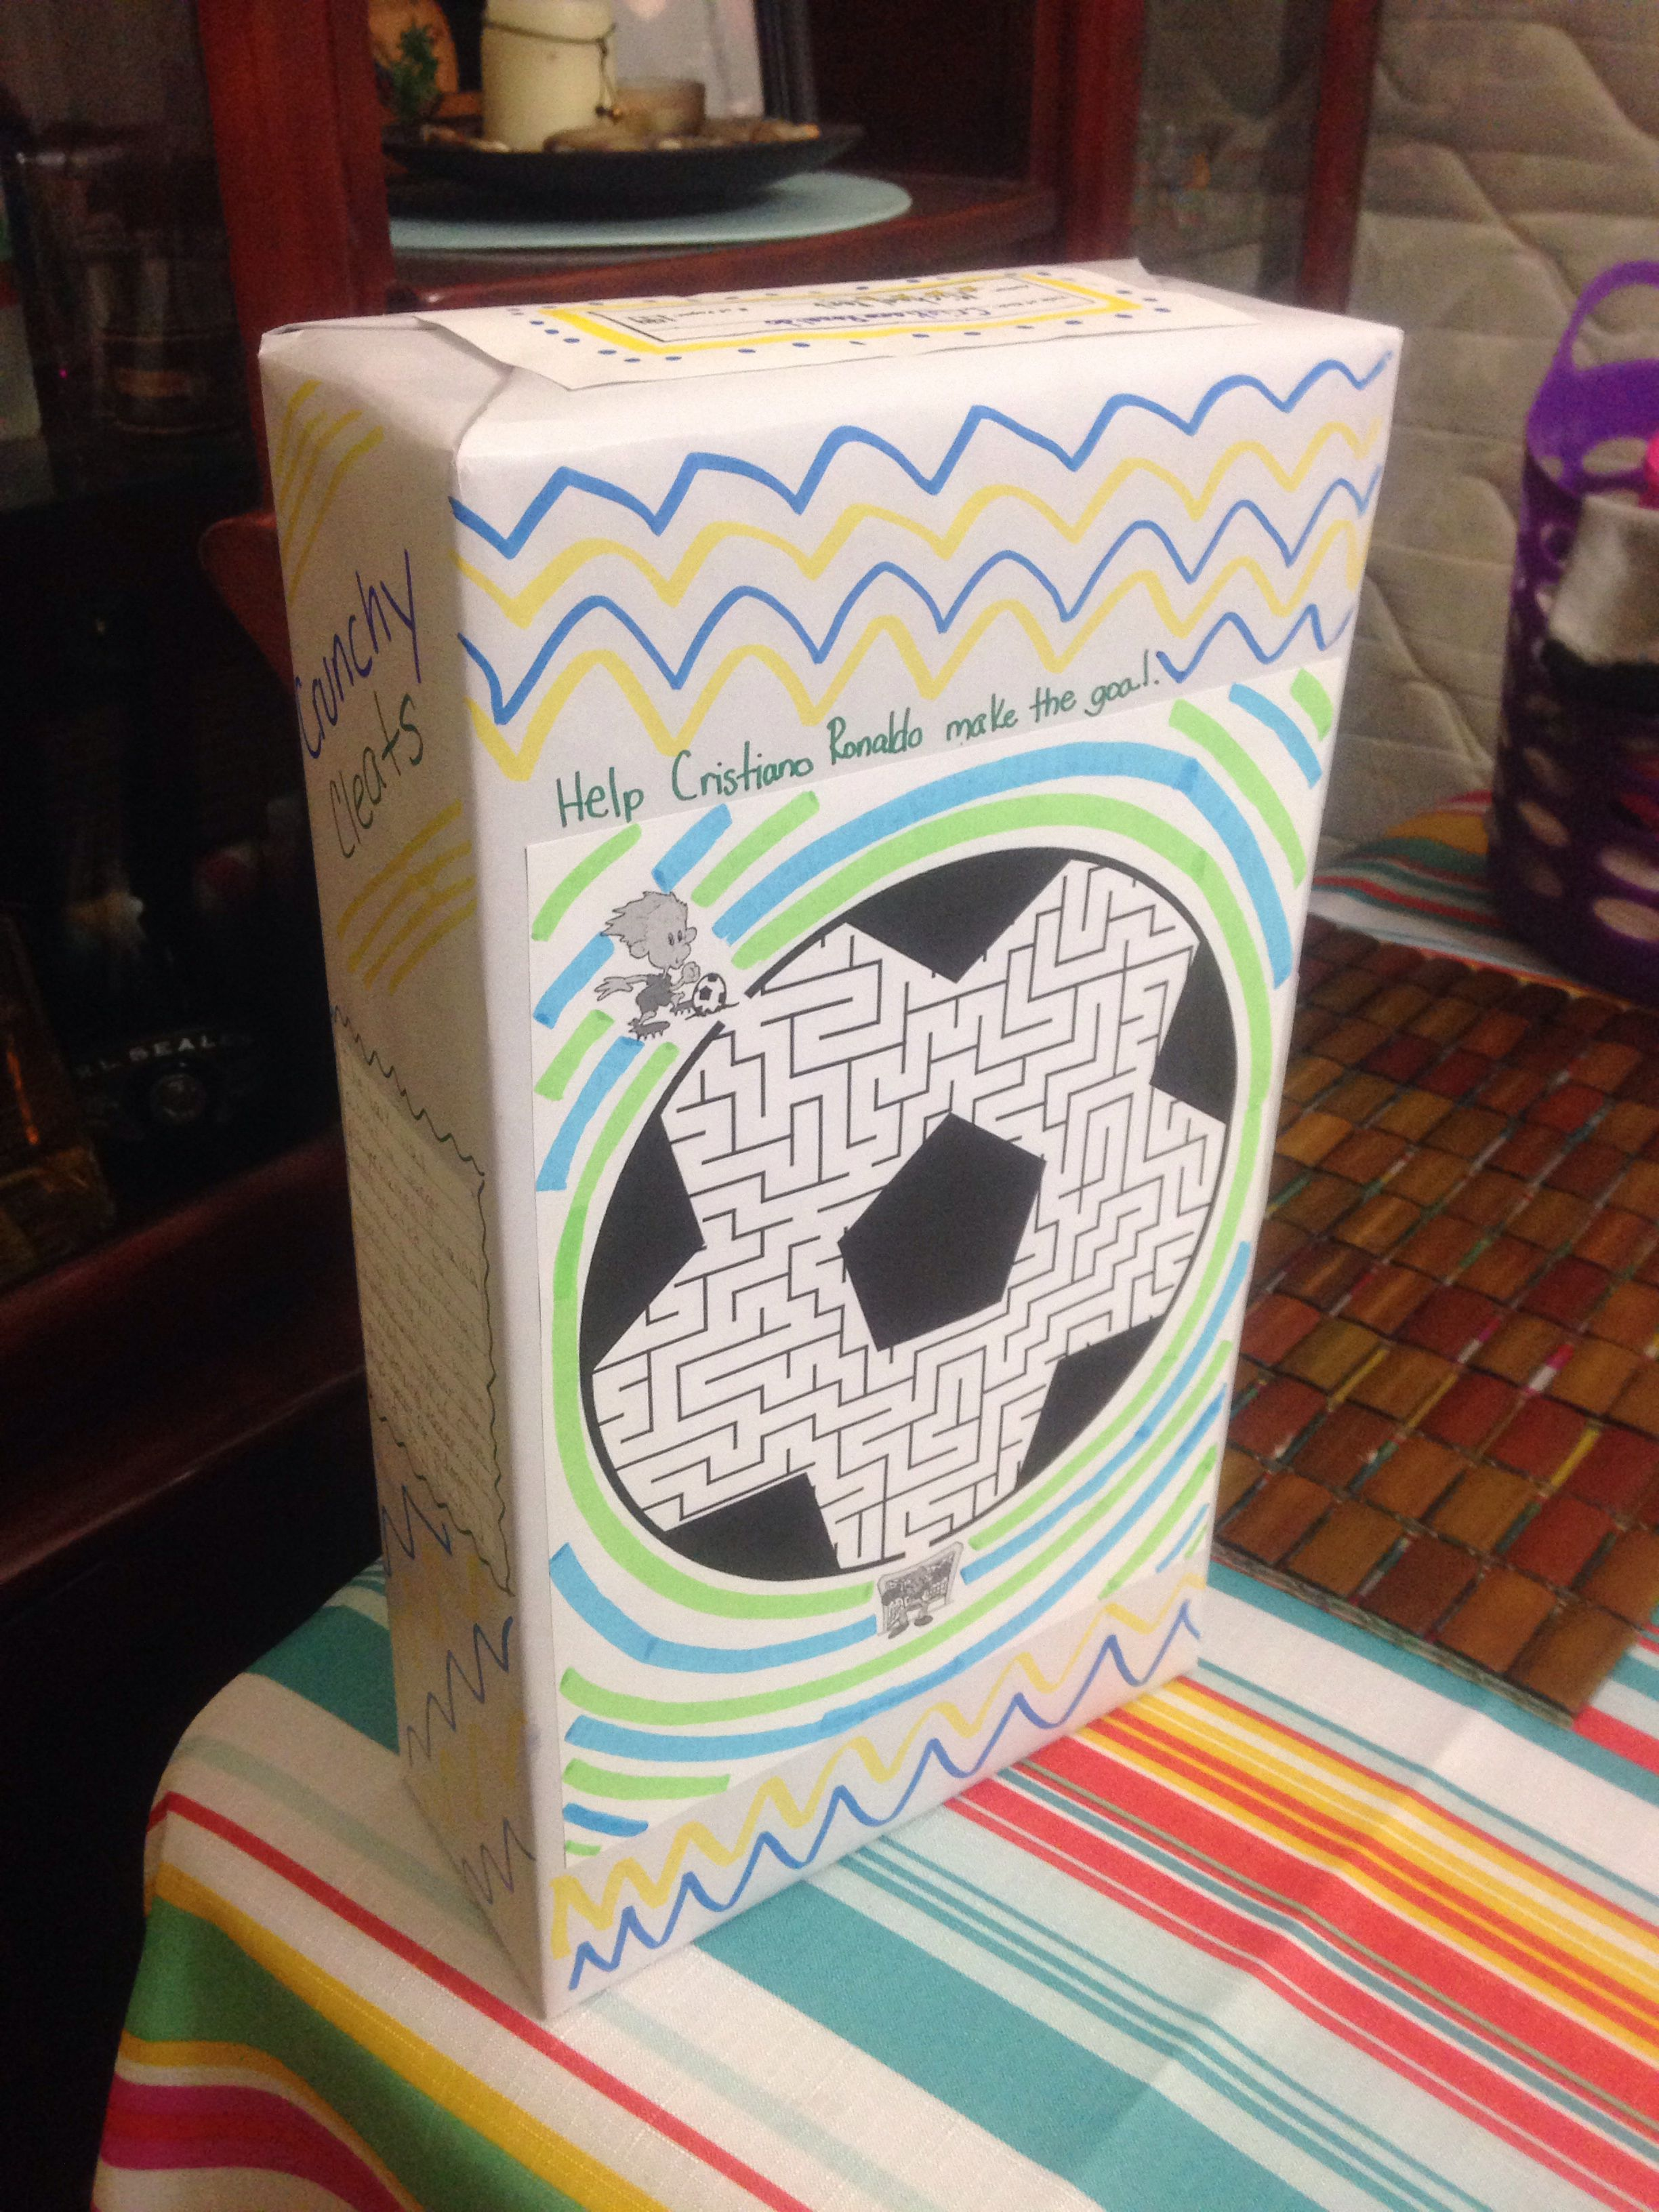 Book report cereal box project my projects pinterest for Cereal box project for school